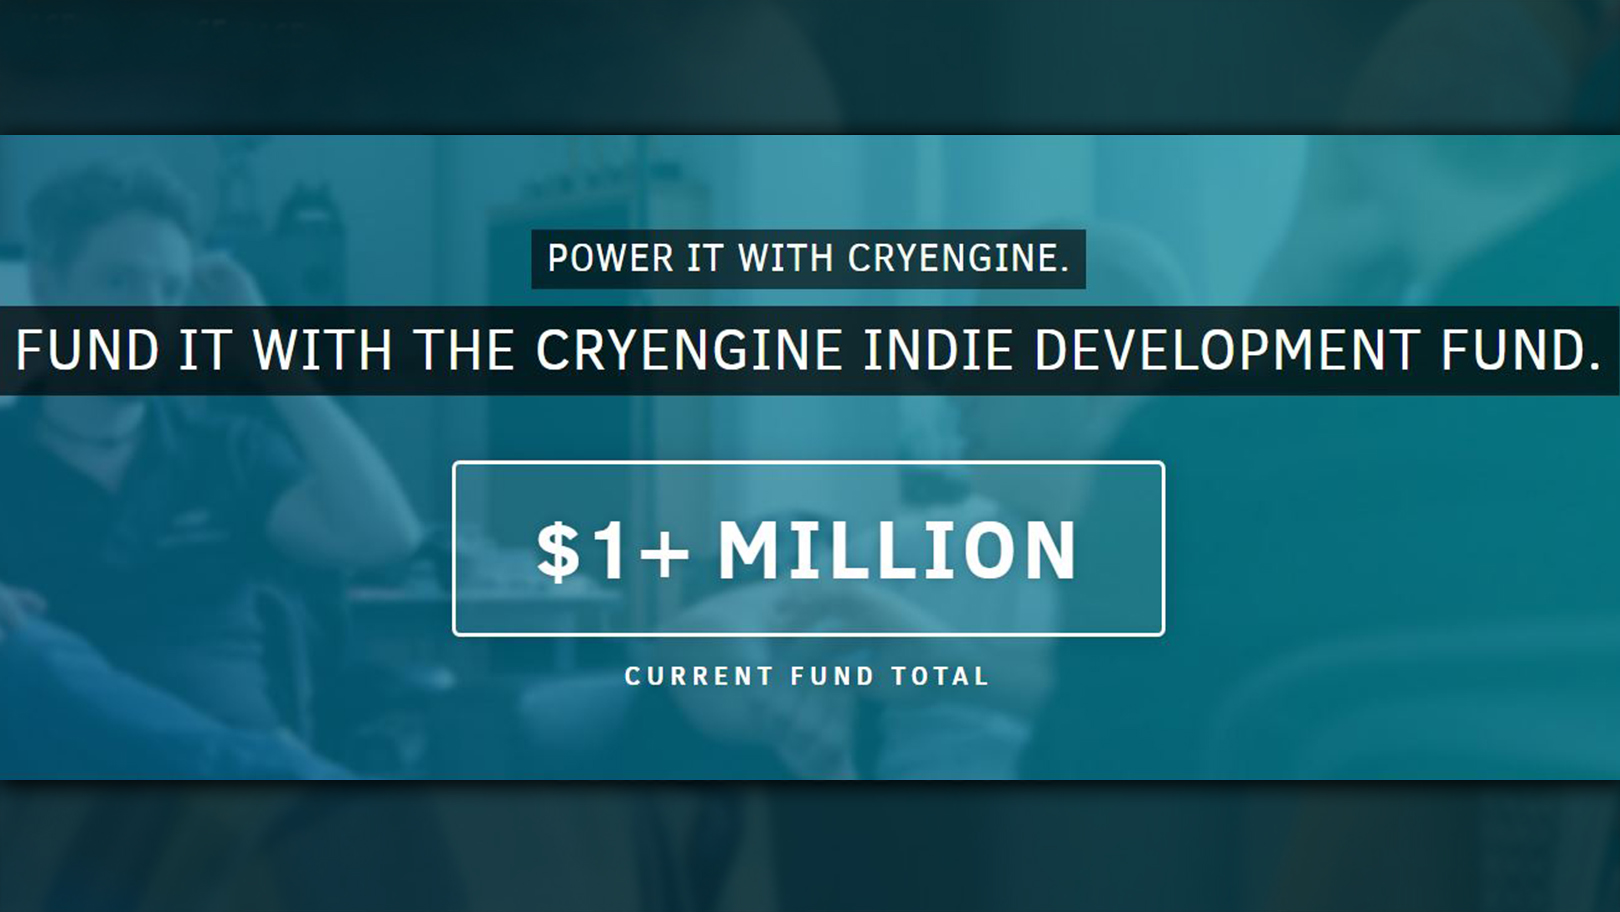 CRYENGINE's Million-Dollar Indie Development Fund Open for Applications